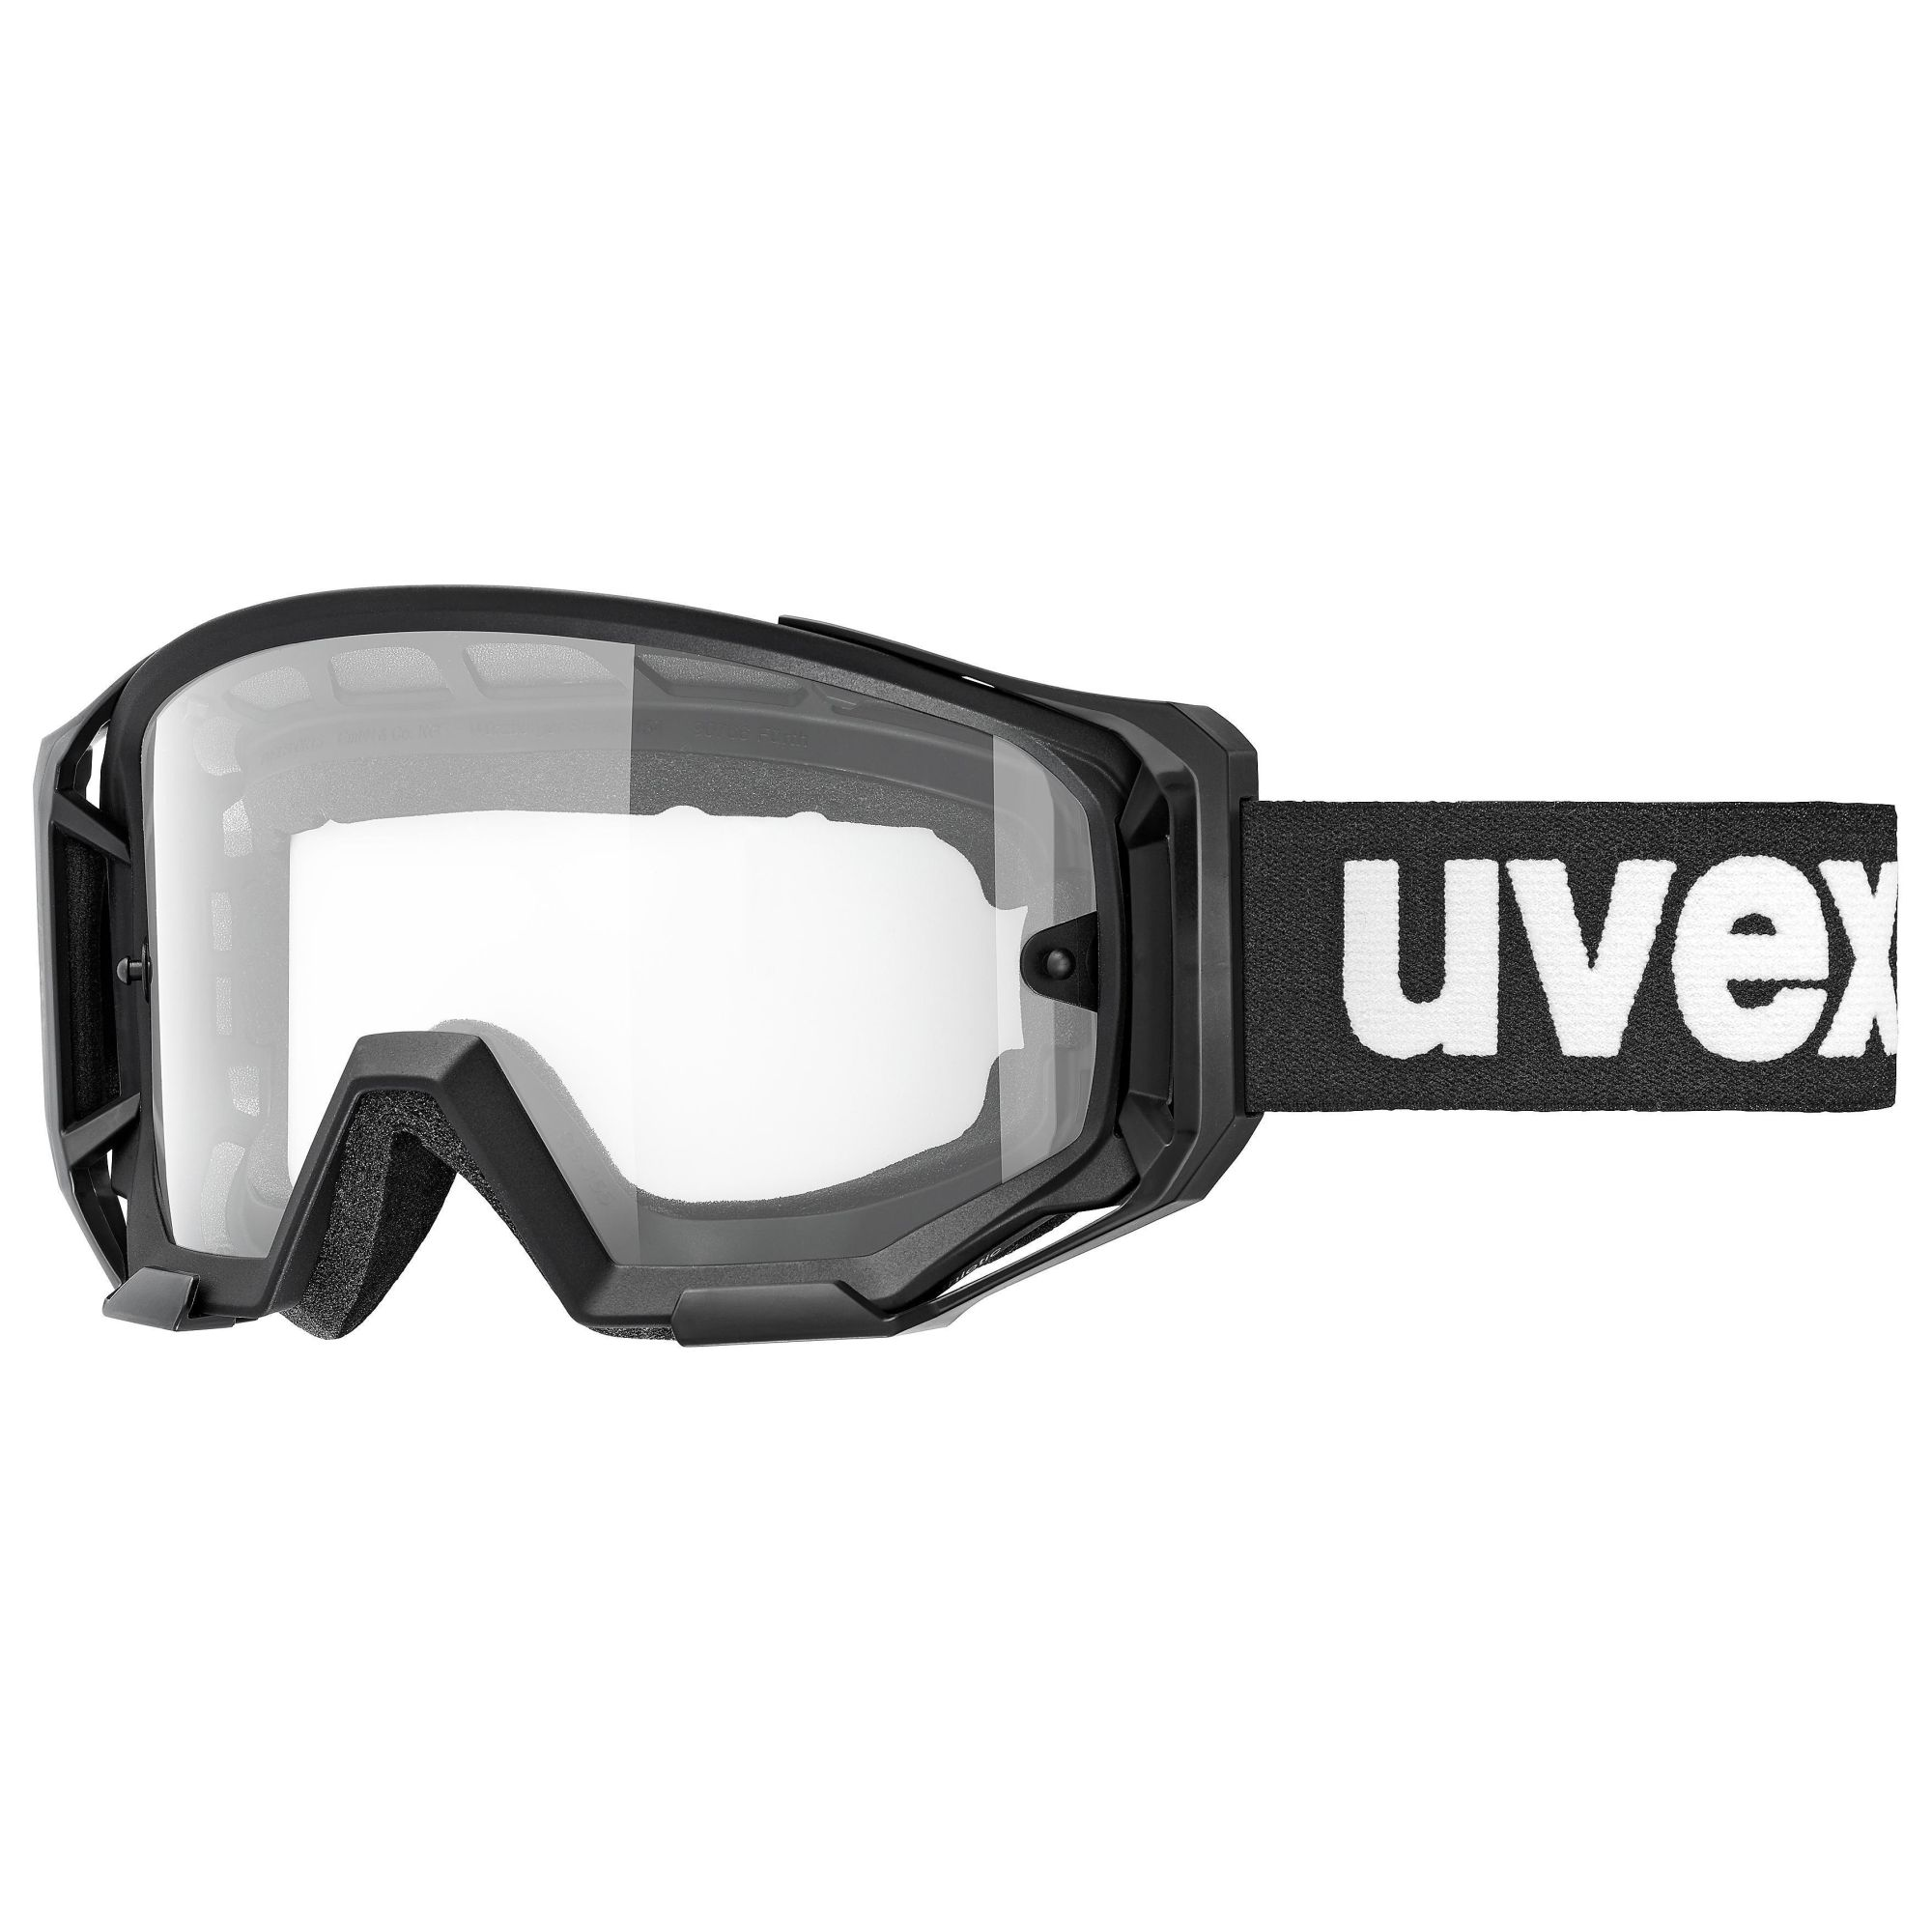 Bekleidung/Accessoires: Uvex  Brille athletic bike one size